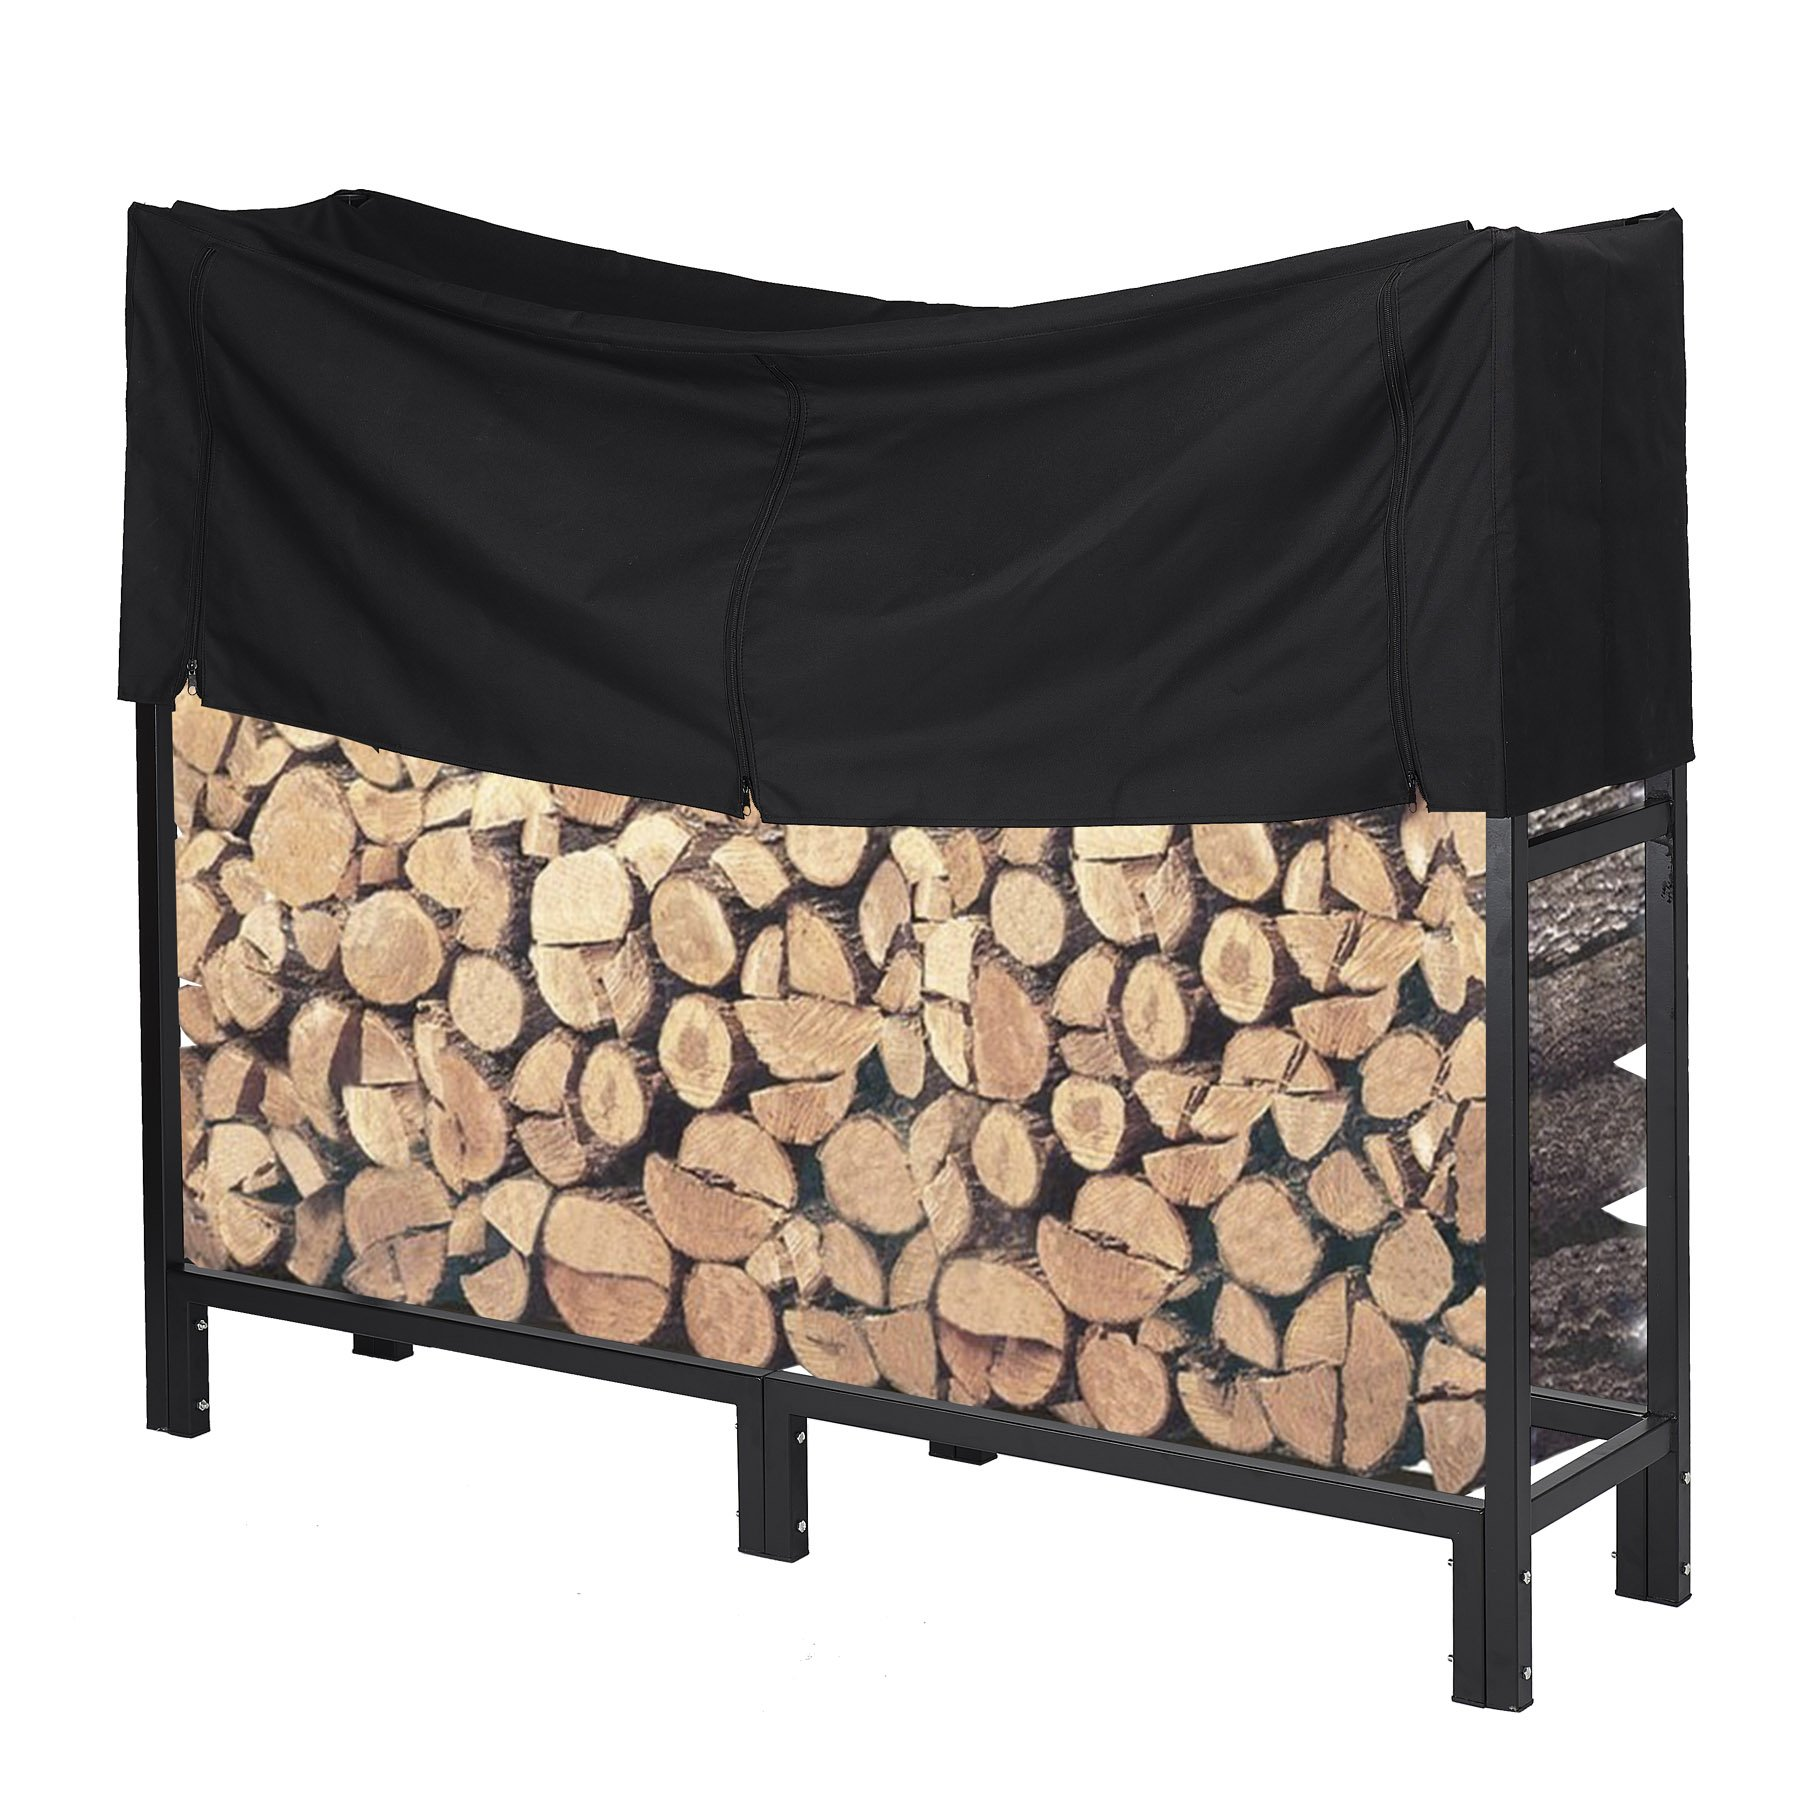 Pinty Outdoor Log Rack with Cover 5 Foot Fireplace Wood Holder